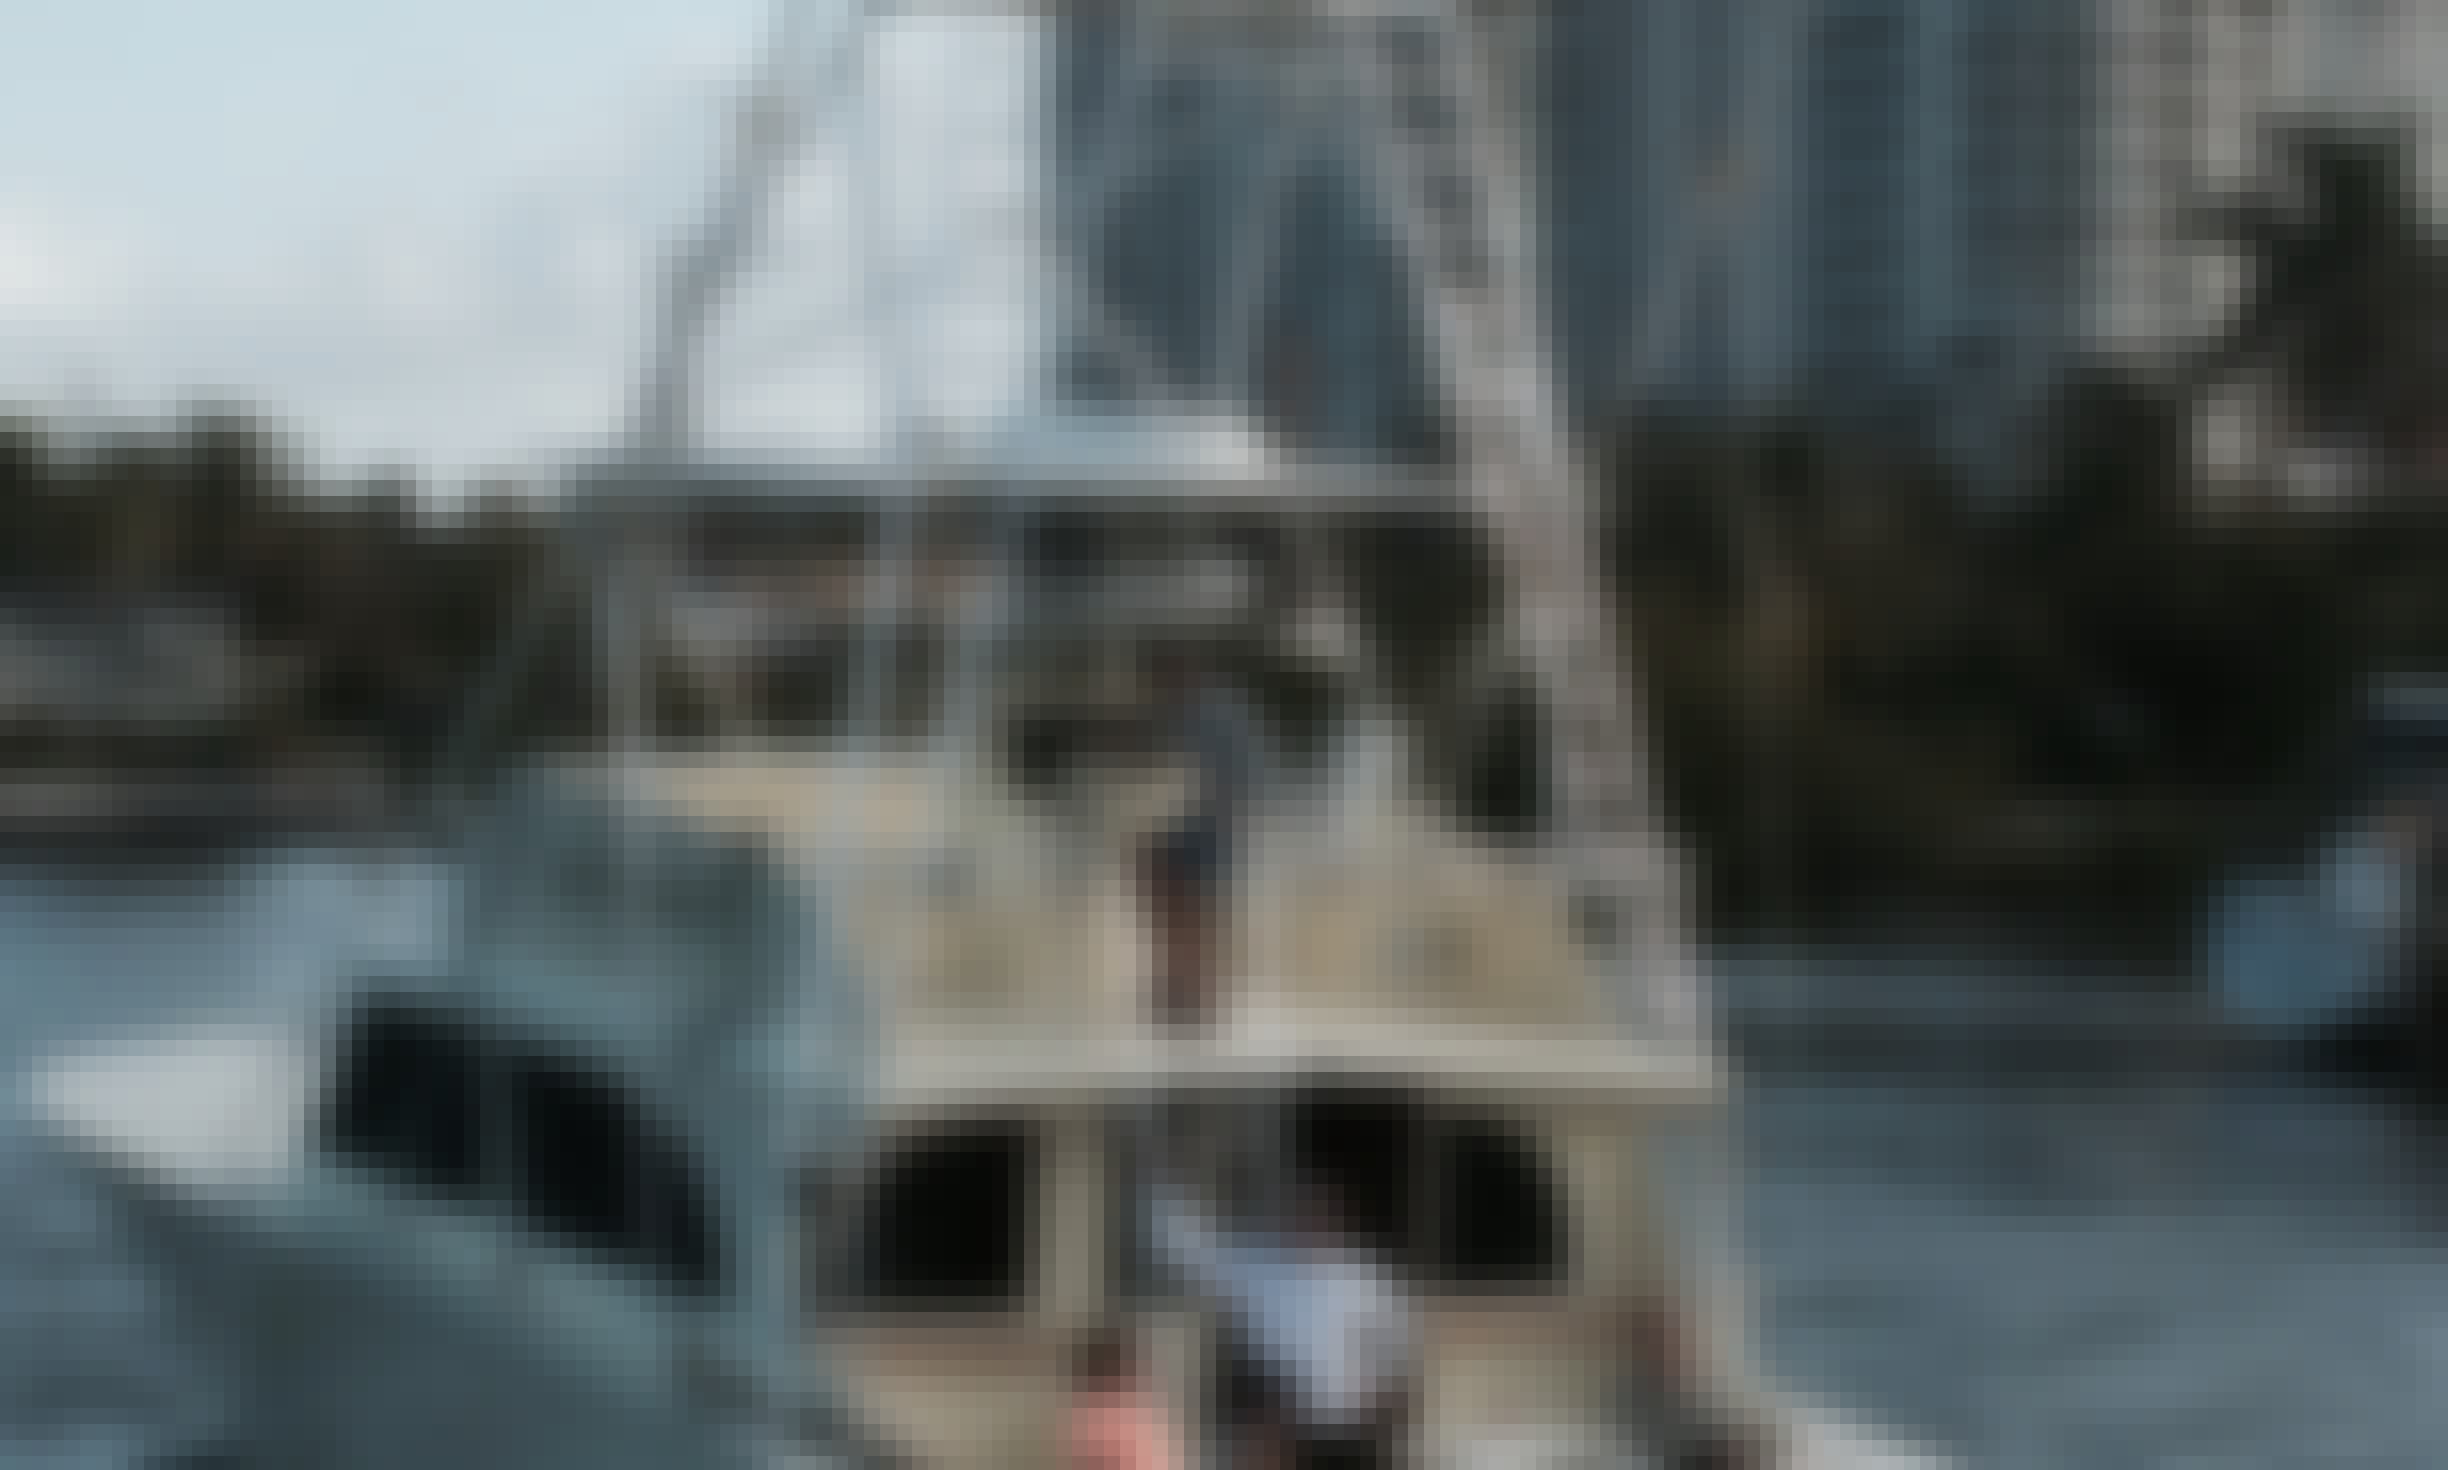 Fishing Charter Or Intercostal Cruise